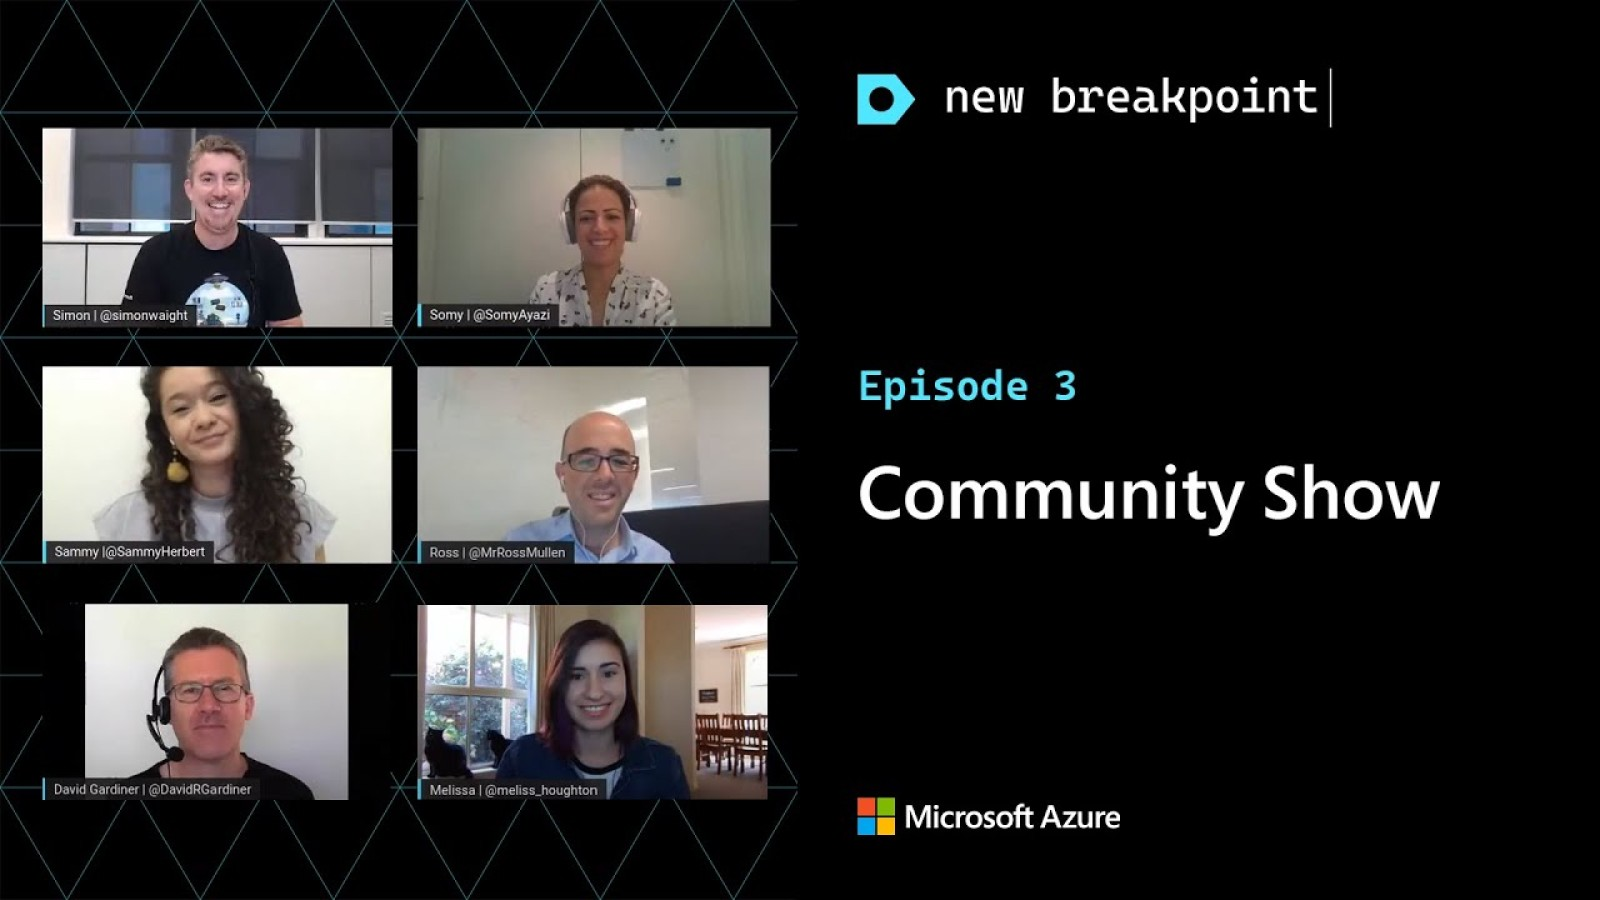 New Breakpoint Episode 3 - Community Show